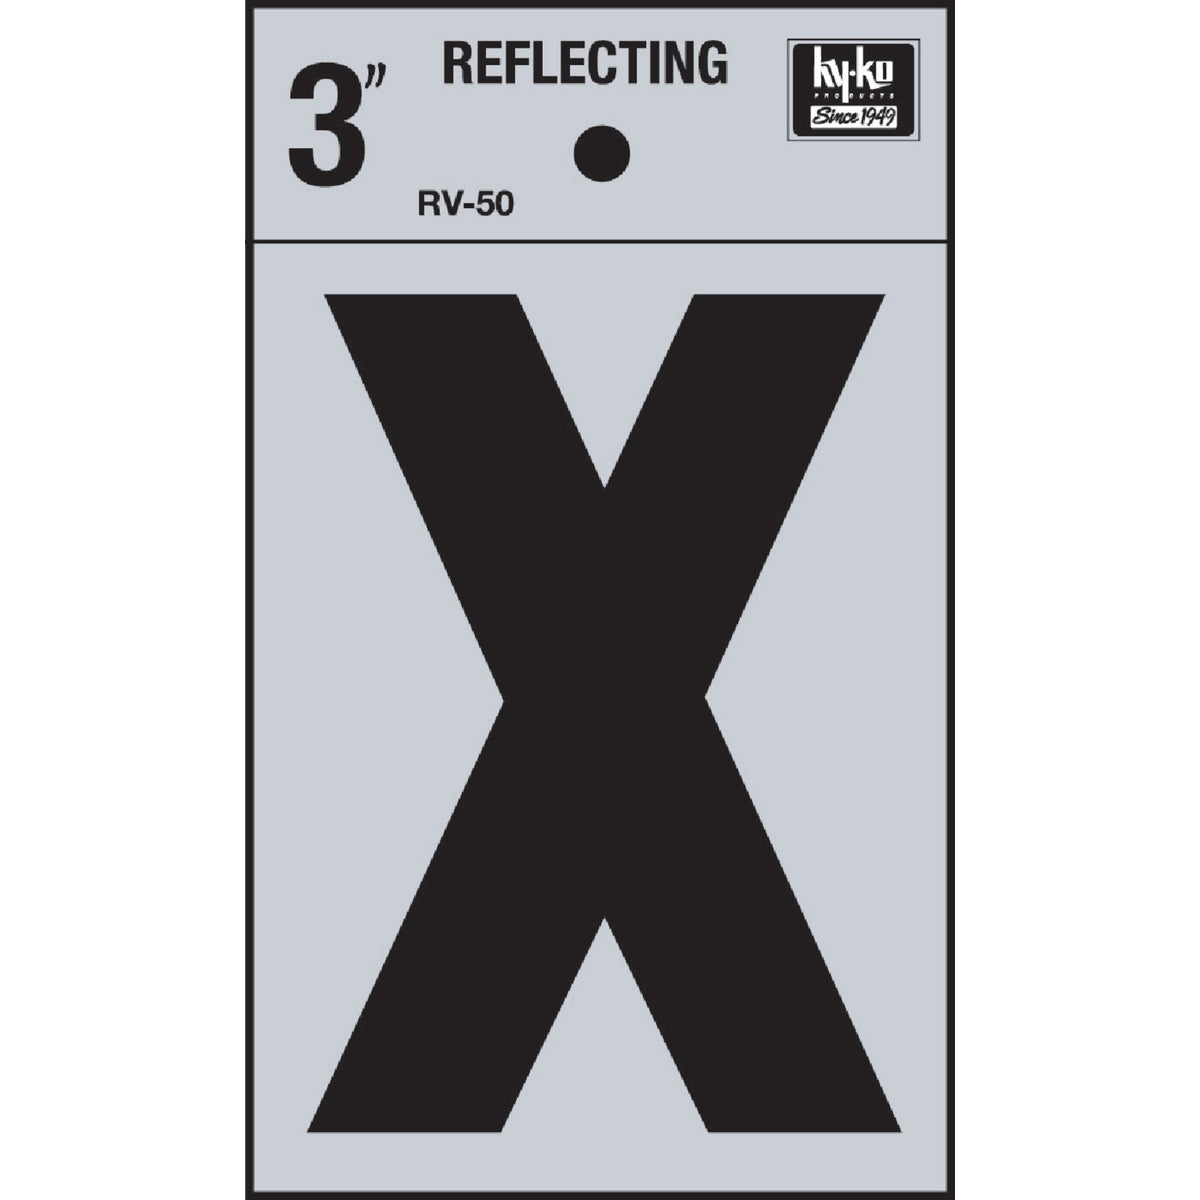 "3"" REFLECT LETTER X - RV-50X by Hy Ko Prods Co"